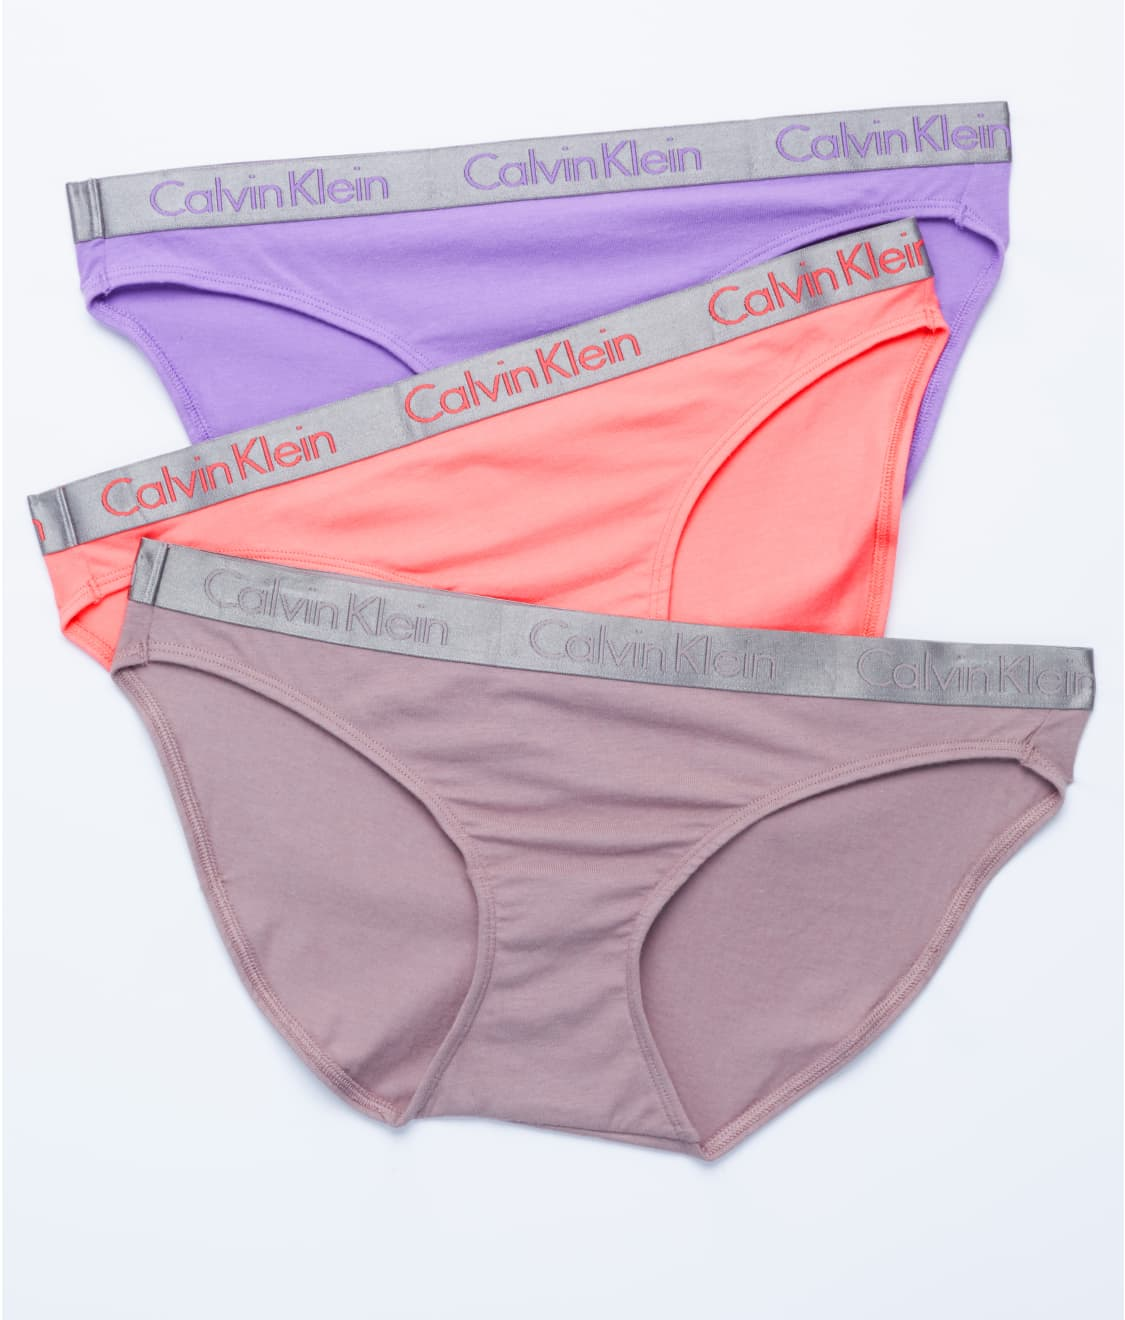 df0d6c71934a Calvin Klein Radiant Cotton Bikini 3-Pack | Bare Necessities (QD3589)